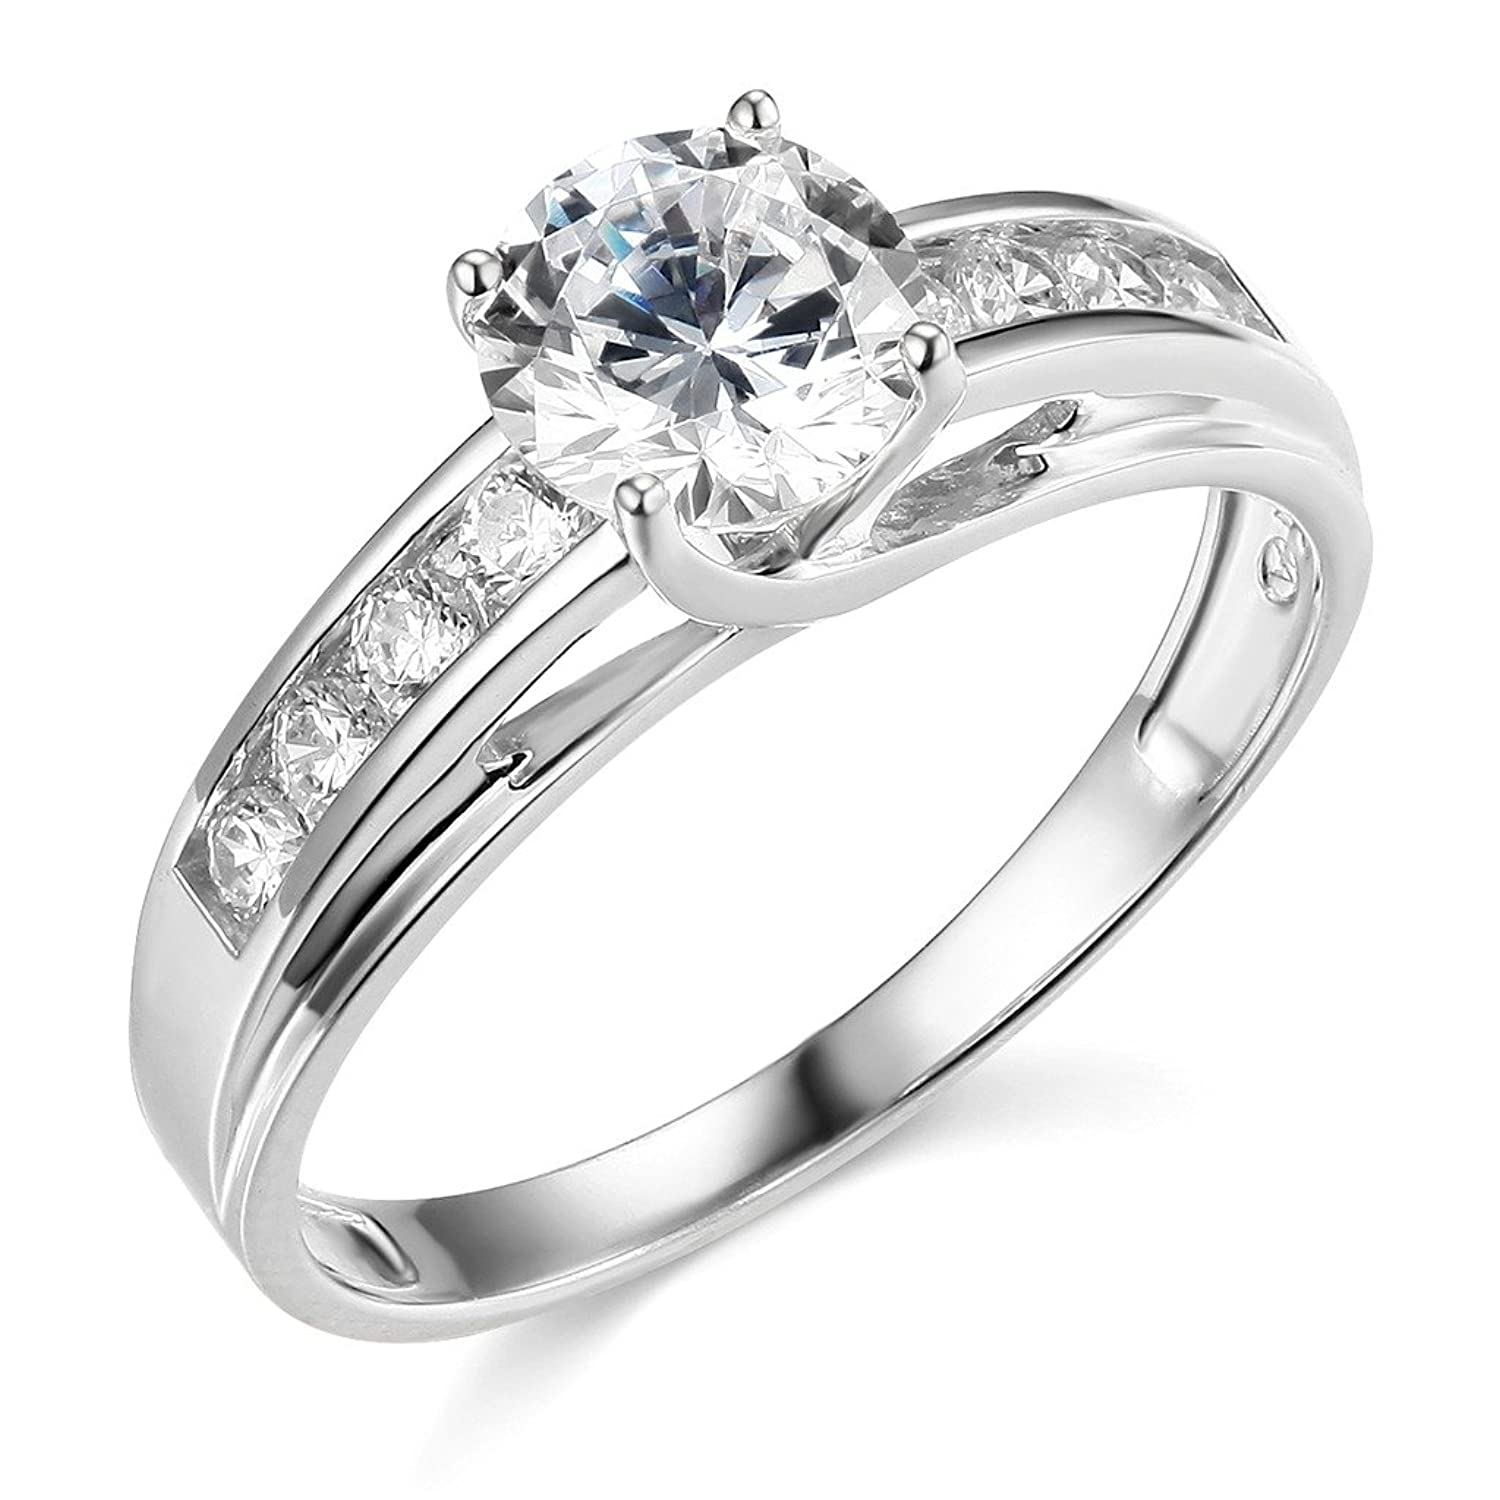 rings engagement sterling promise wg with ring white diamonds in diamond heart nl tri silver fascinating jewelry